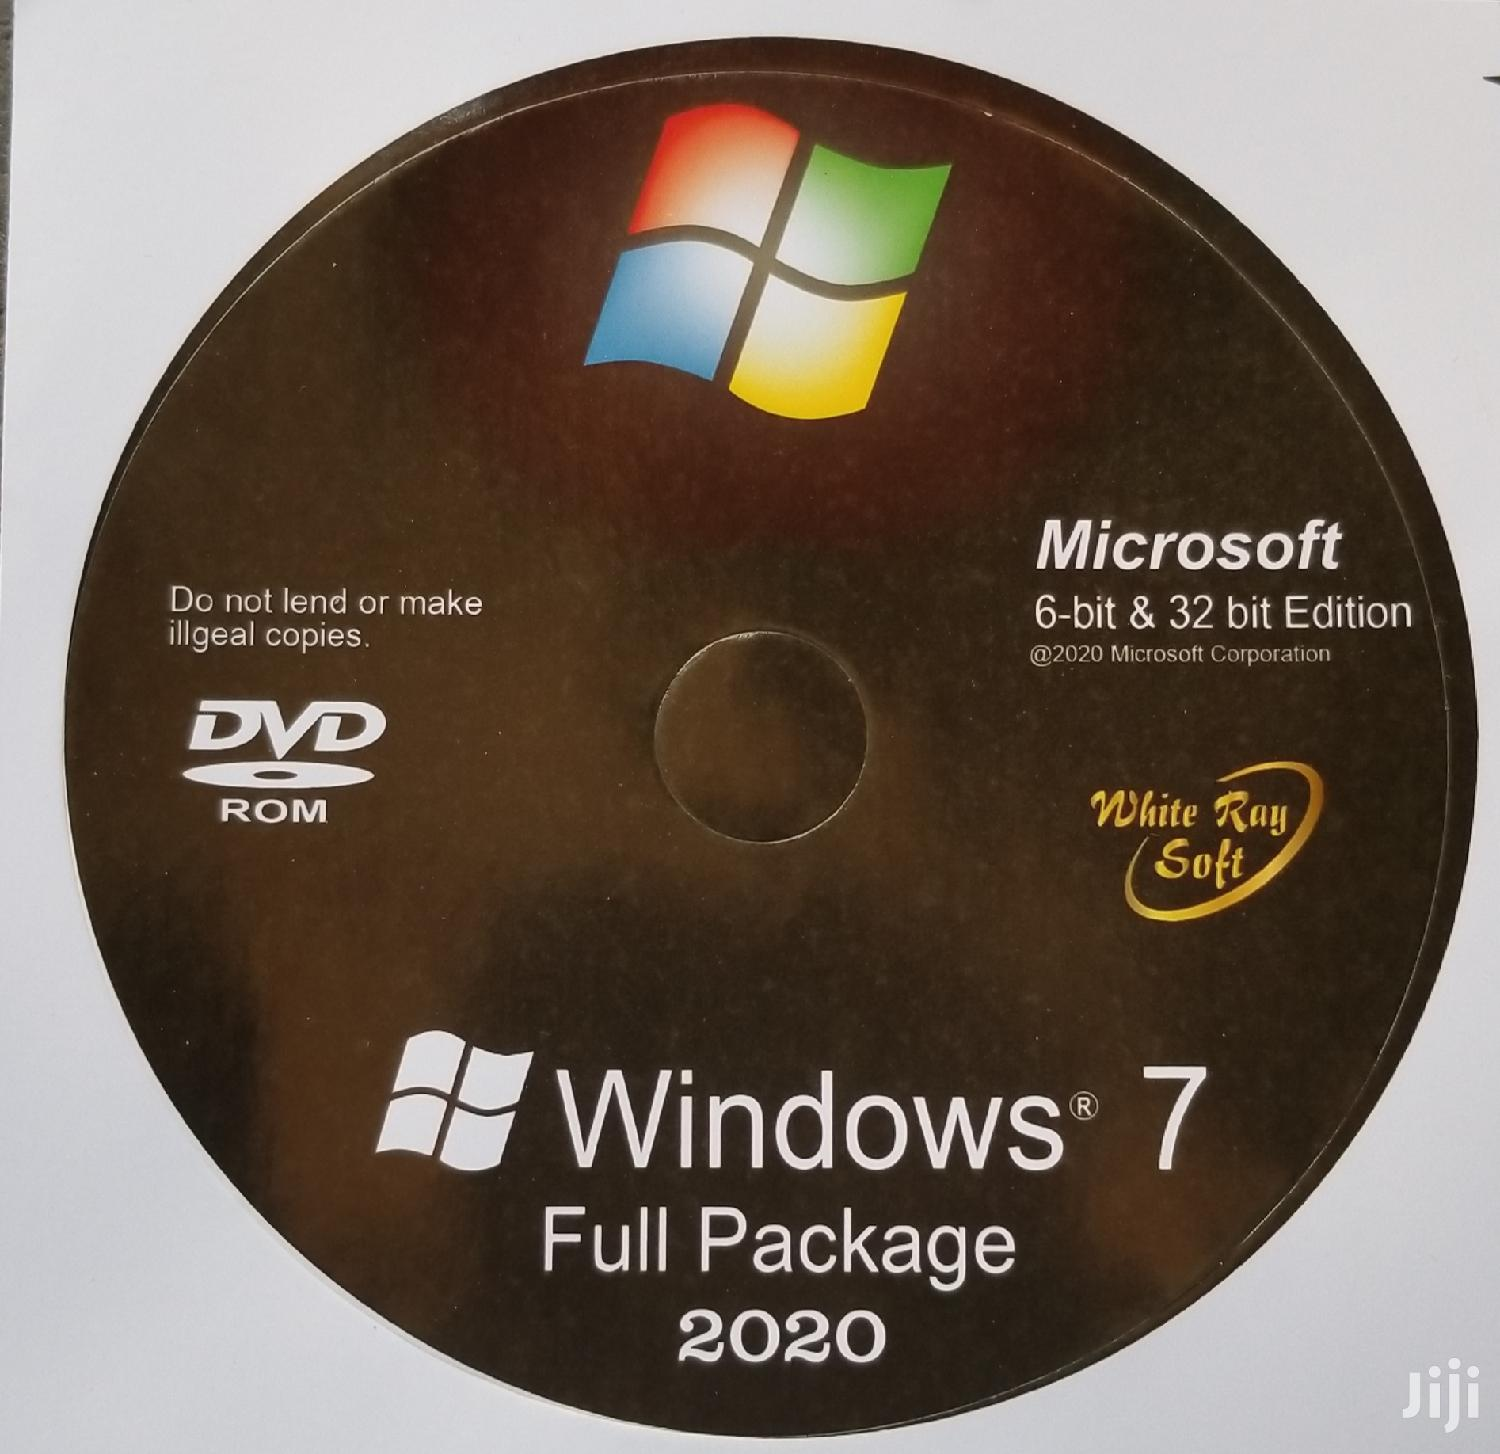 Archive: Windows 10 Whiteraysoft.